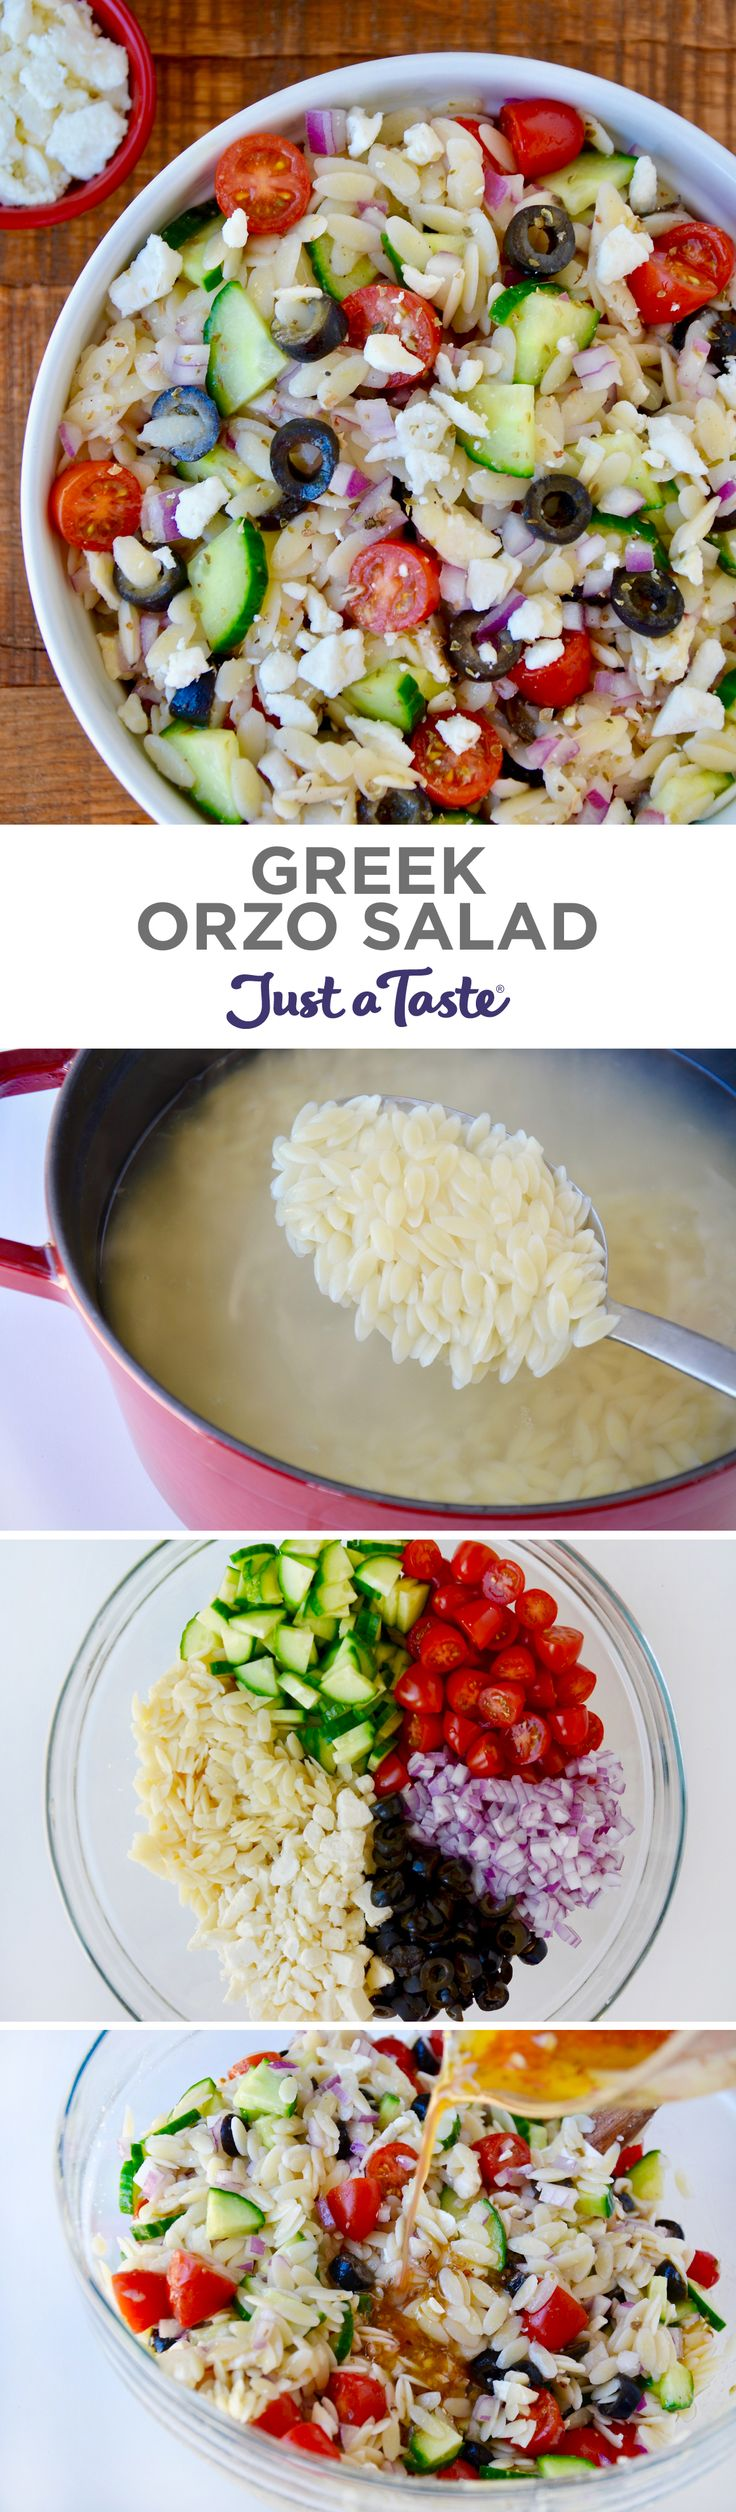 Greek Orzo Salad recipe from justataste.com #recipe #summer @justataste